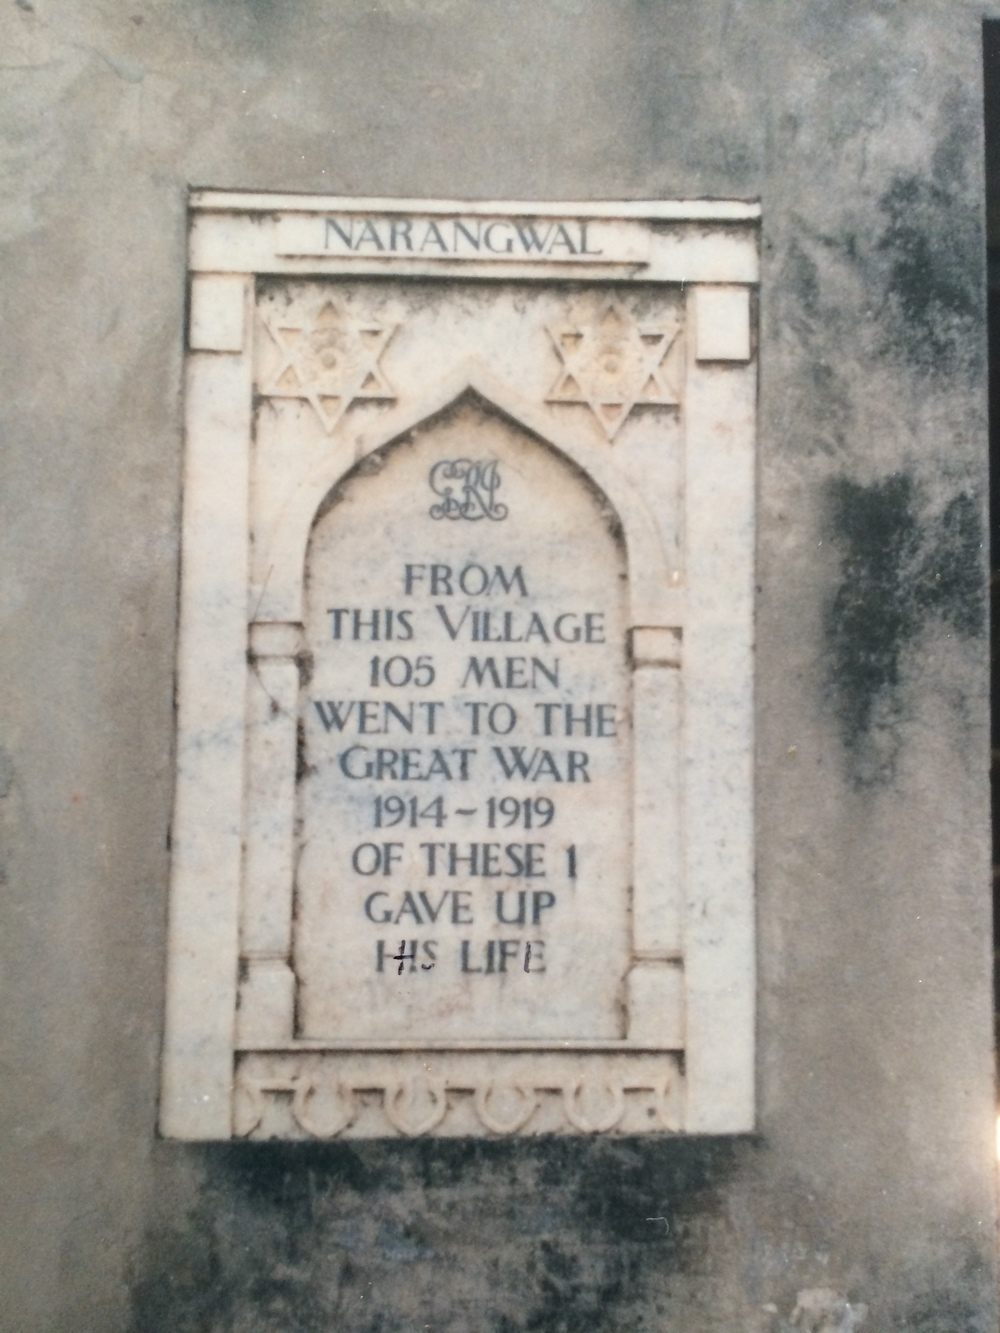 War memorial, Narangwal